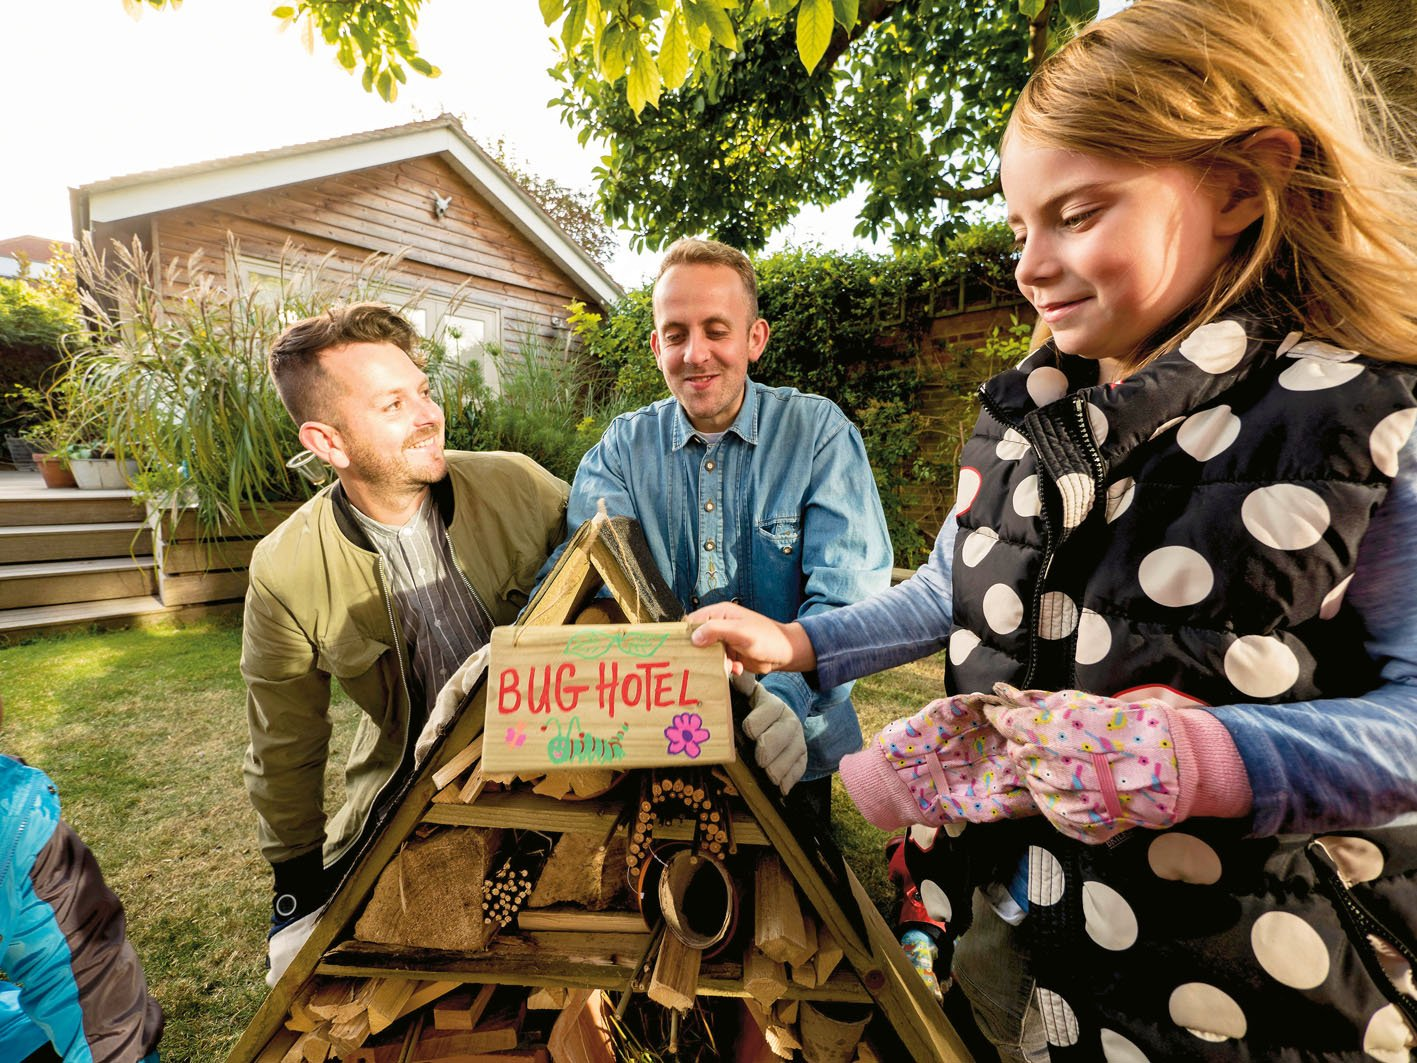 open your bug hotel